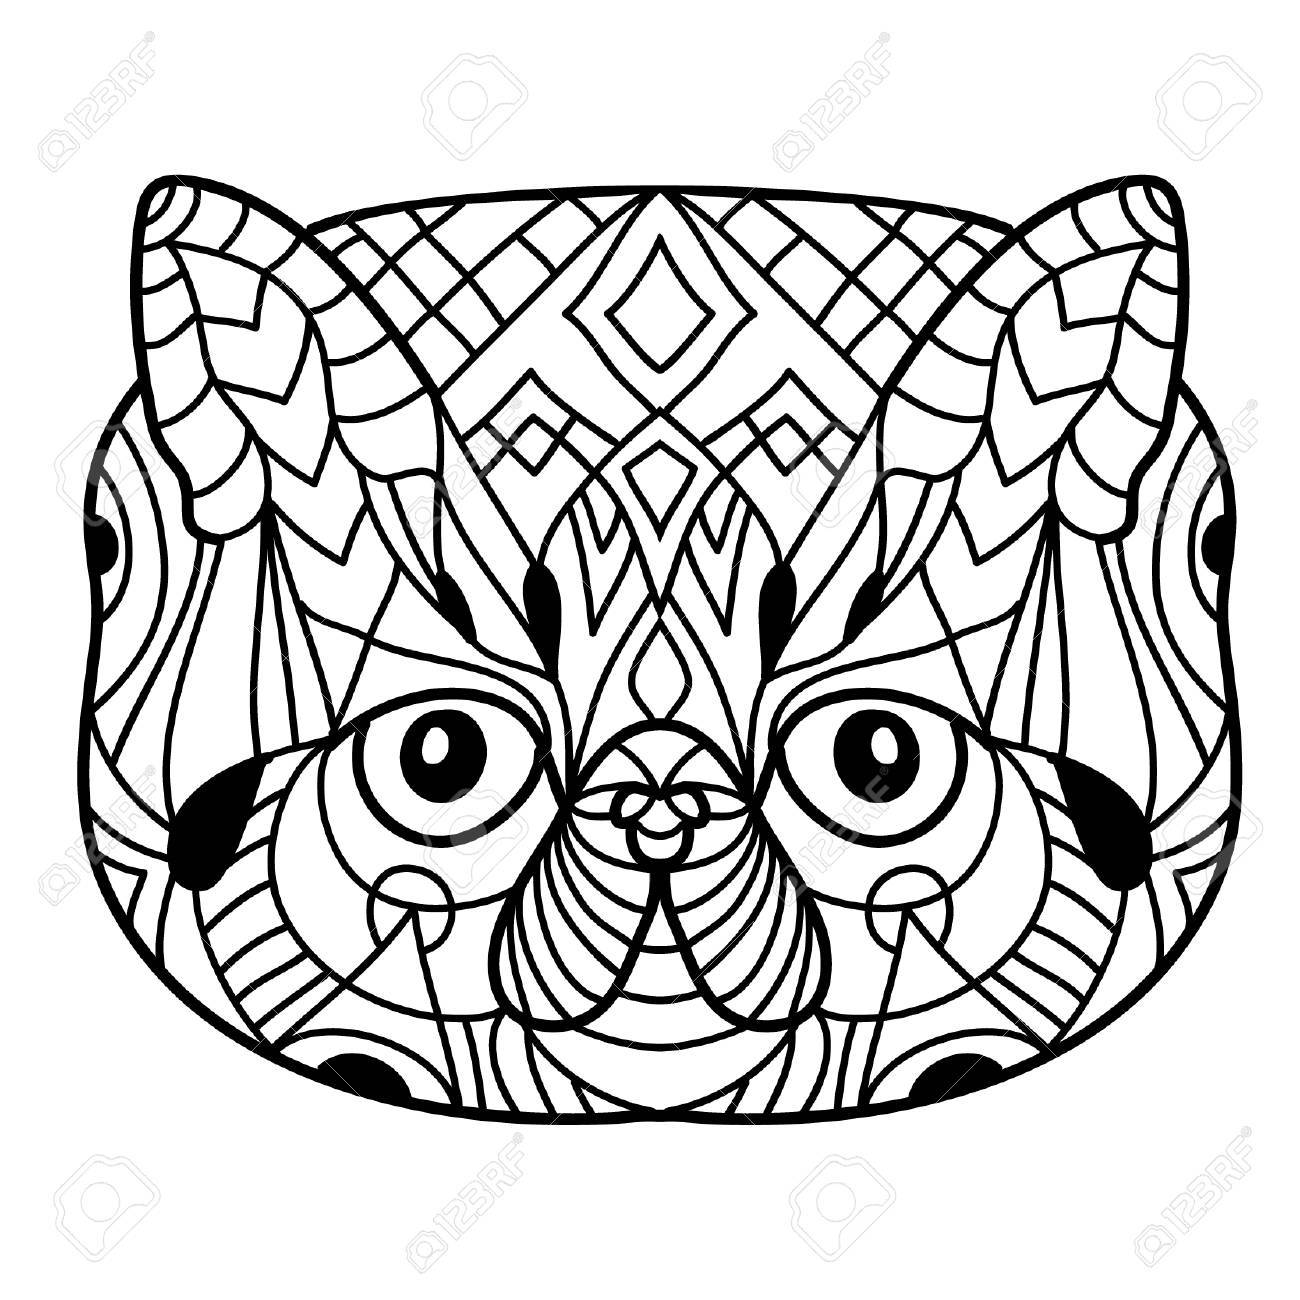 1300x1300 Coloring Book For Adults. Cat Book. Head Of A Cat On